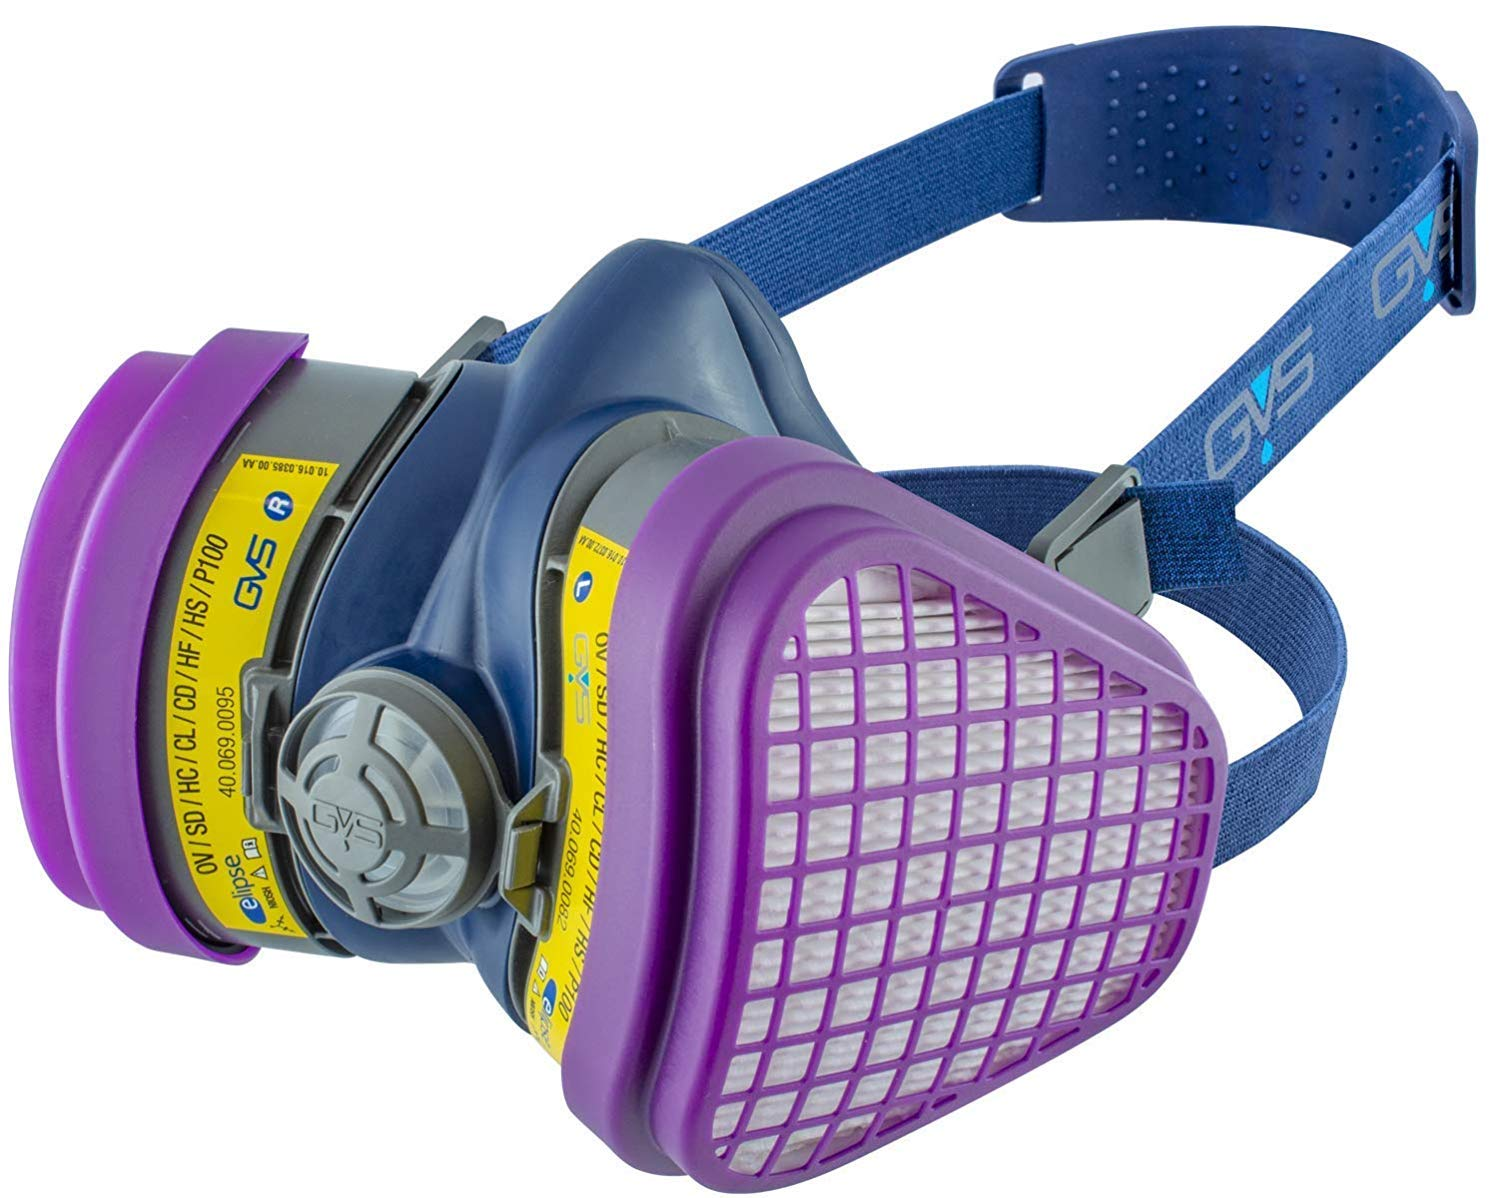 GVS SPR473 Elipse OV/AG-P100 Dust and Organic/Acid Gas Vapour Half Mask Respirator with Replaceable and Reusable Filters Included by GVS Elipse (Image #1)